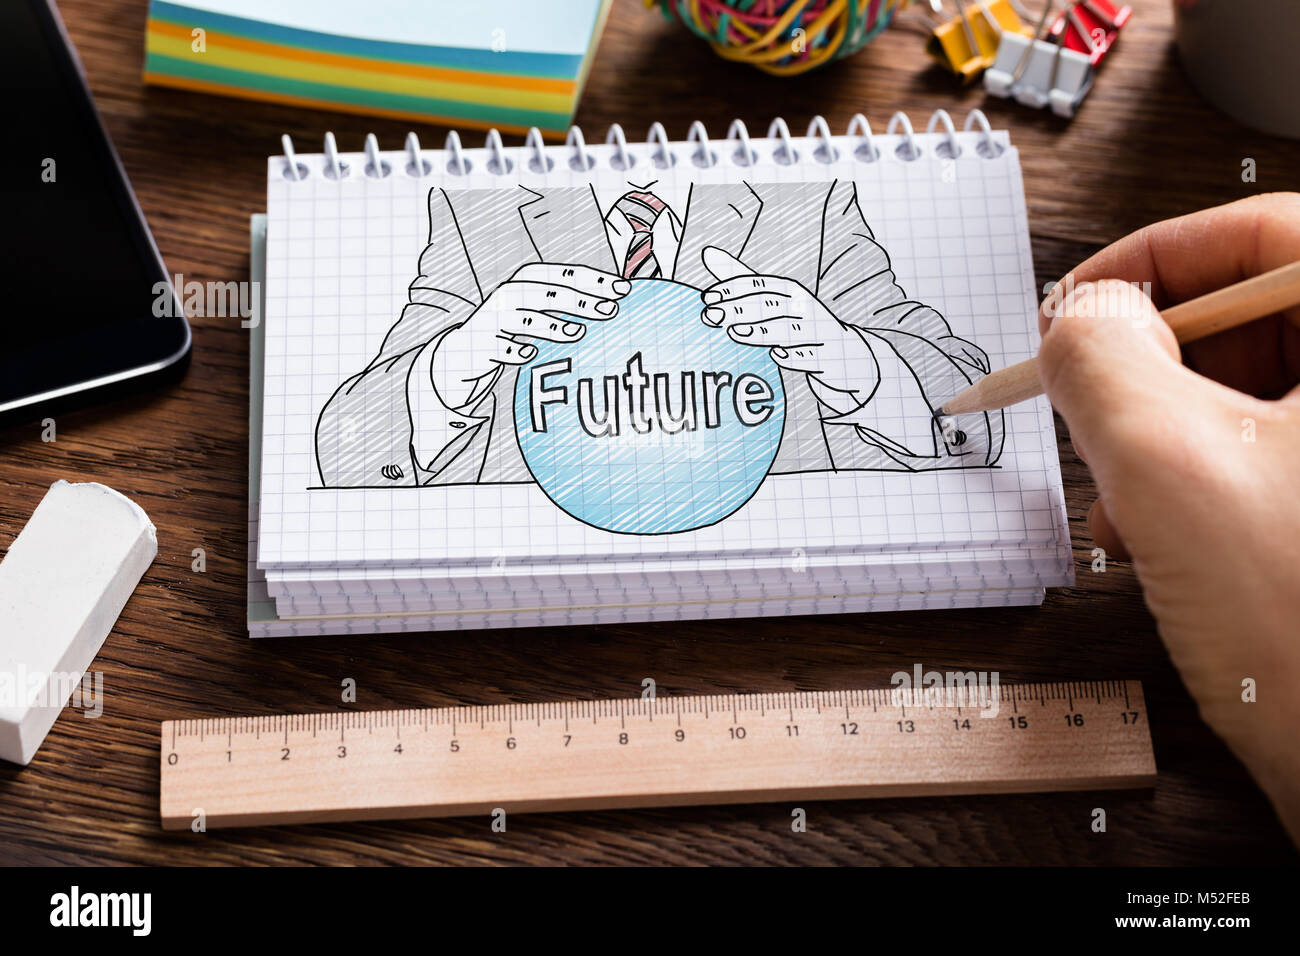 Businessperson's Hand Holding Pencil Drawing Fortune Teller Concept In Spiral Notebook With Stationery - Stock Image